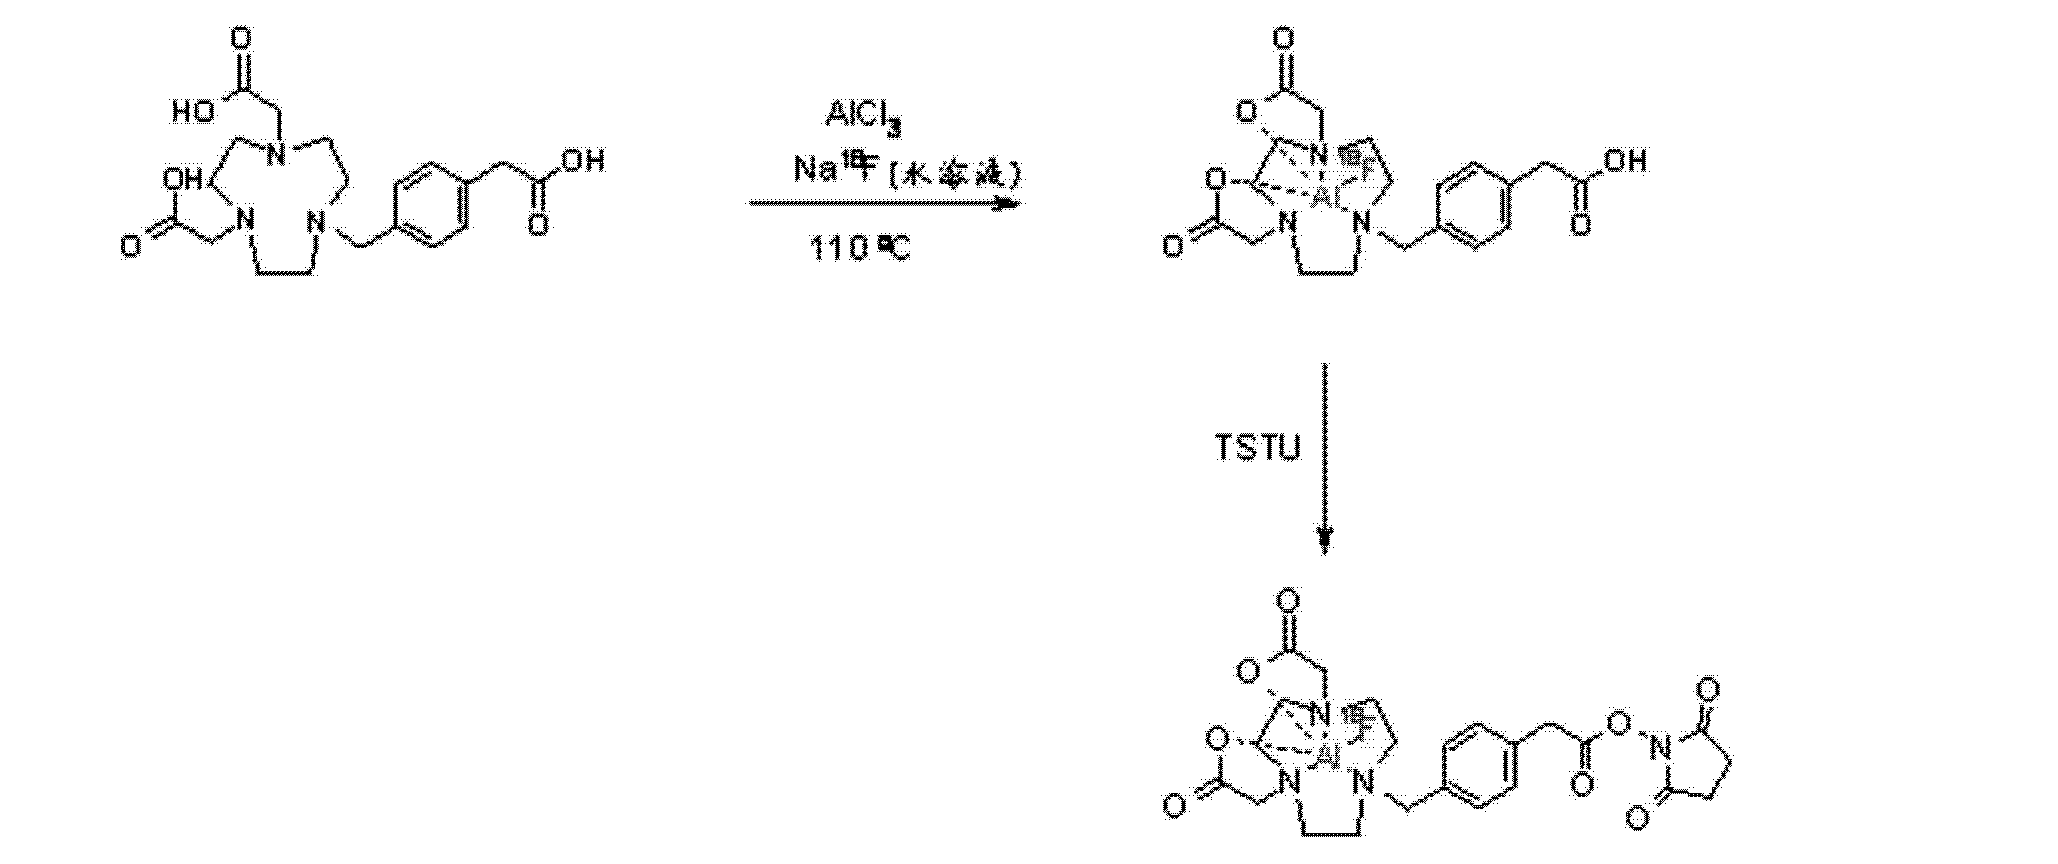 Cn103370063a Methods And Compositions For Improved F 18 Labeling 1100 Parts Manual Click Details Remington 11 87 Diagram Of Proteins Peptides Other Molecules Google Patents